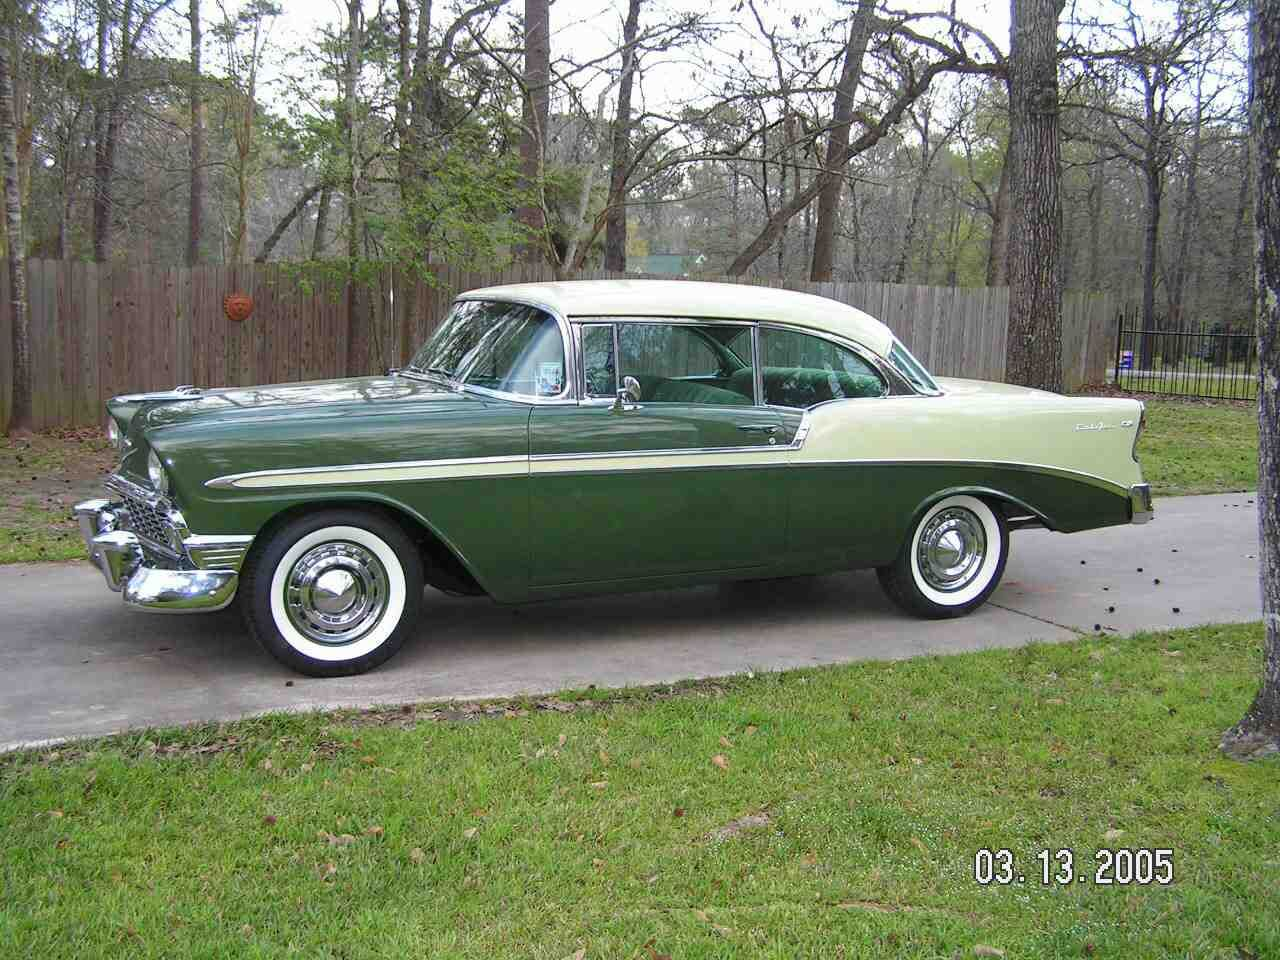 Chevrolet bel air hardtop for sale upcoming chevrolet - 1956 Chevy Bel Air Hard Top 2 Door